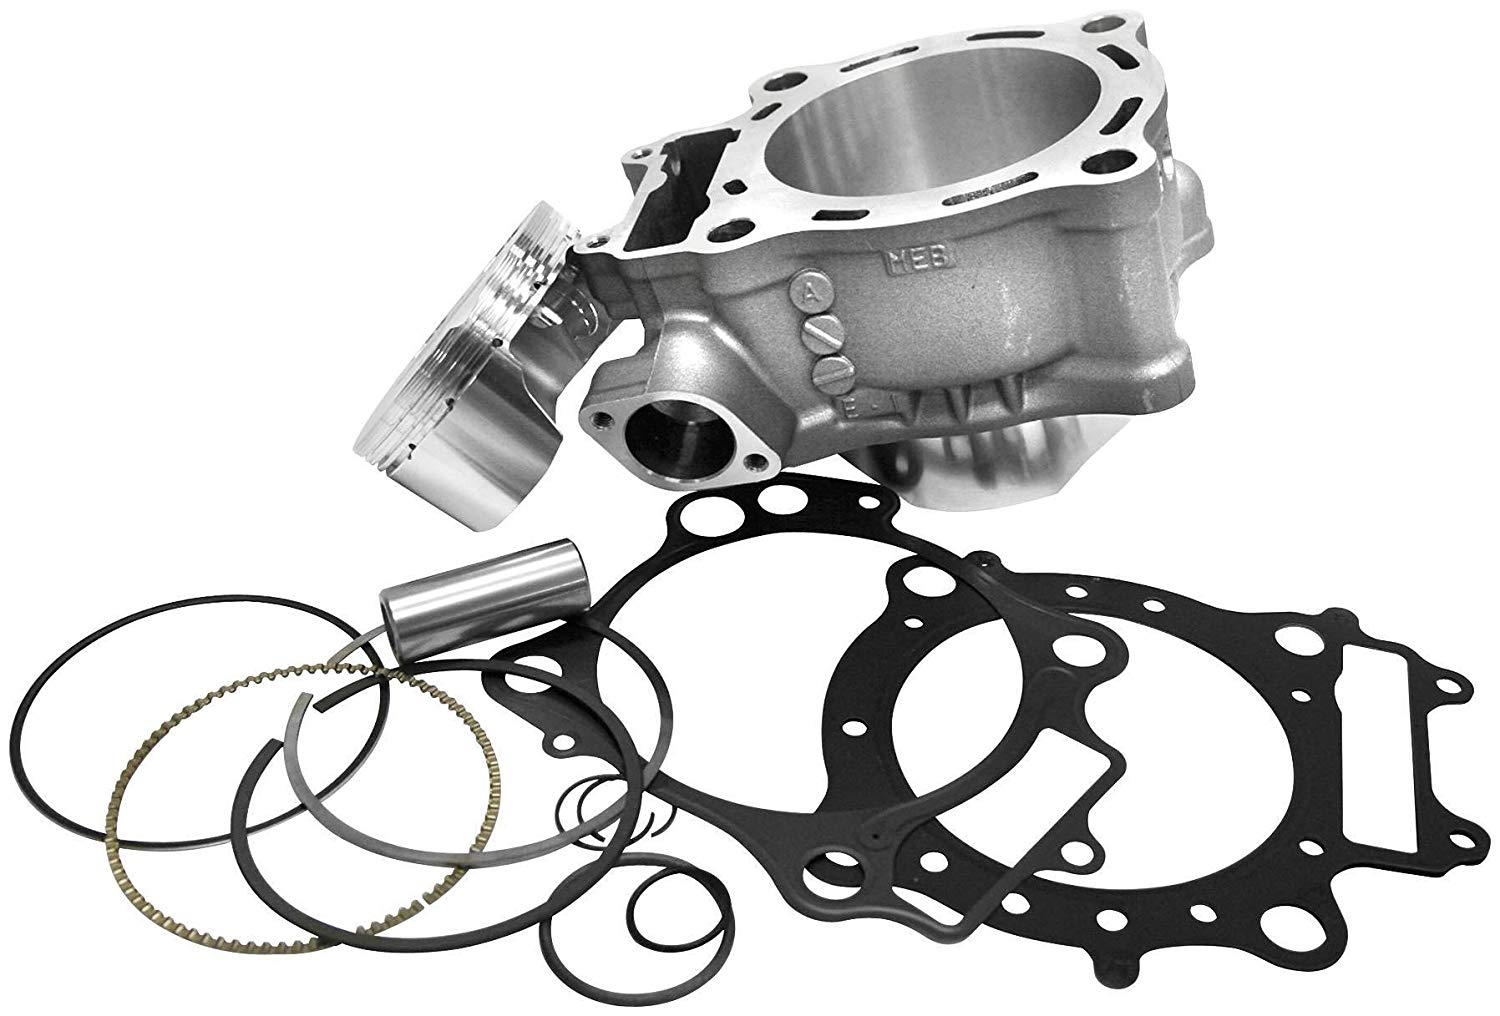 New Cylinder Works Standard Bore Cylinder Kit For Yamaha Wr 250 F 18